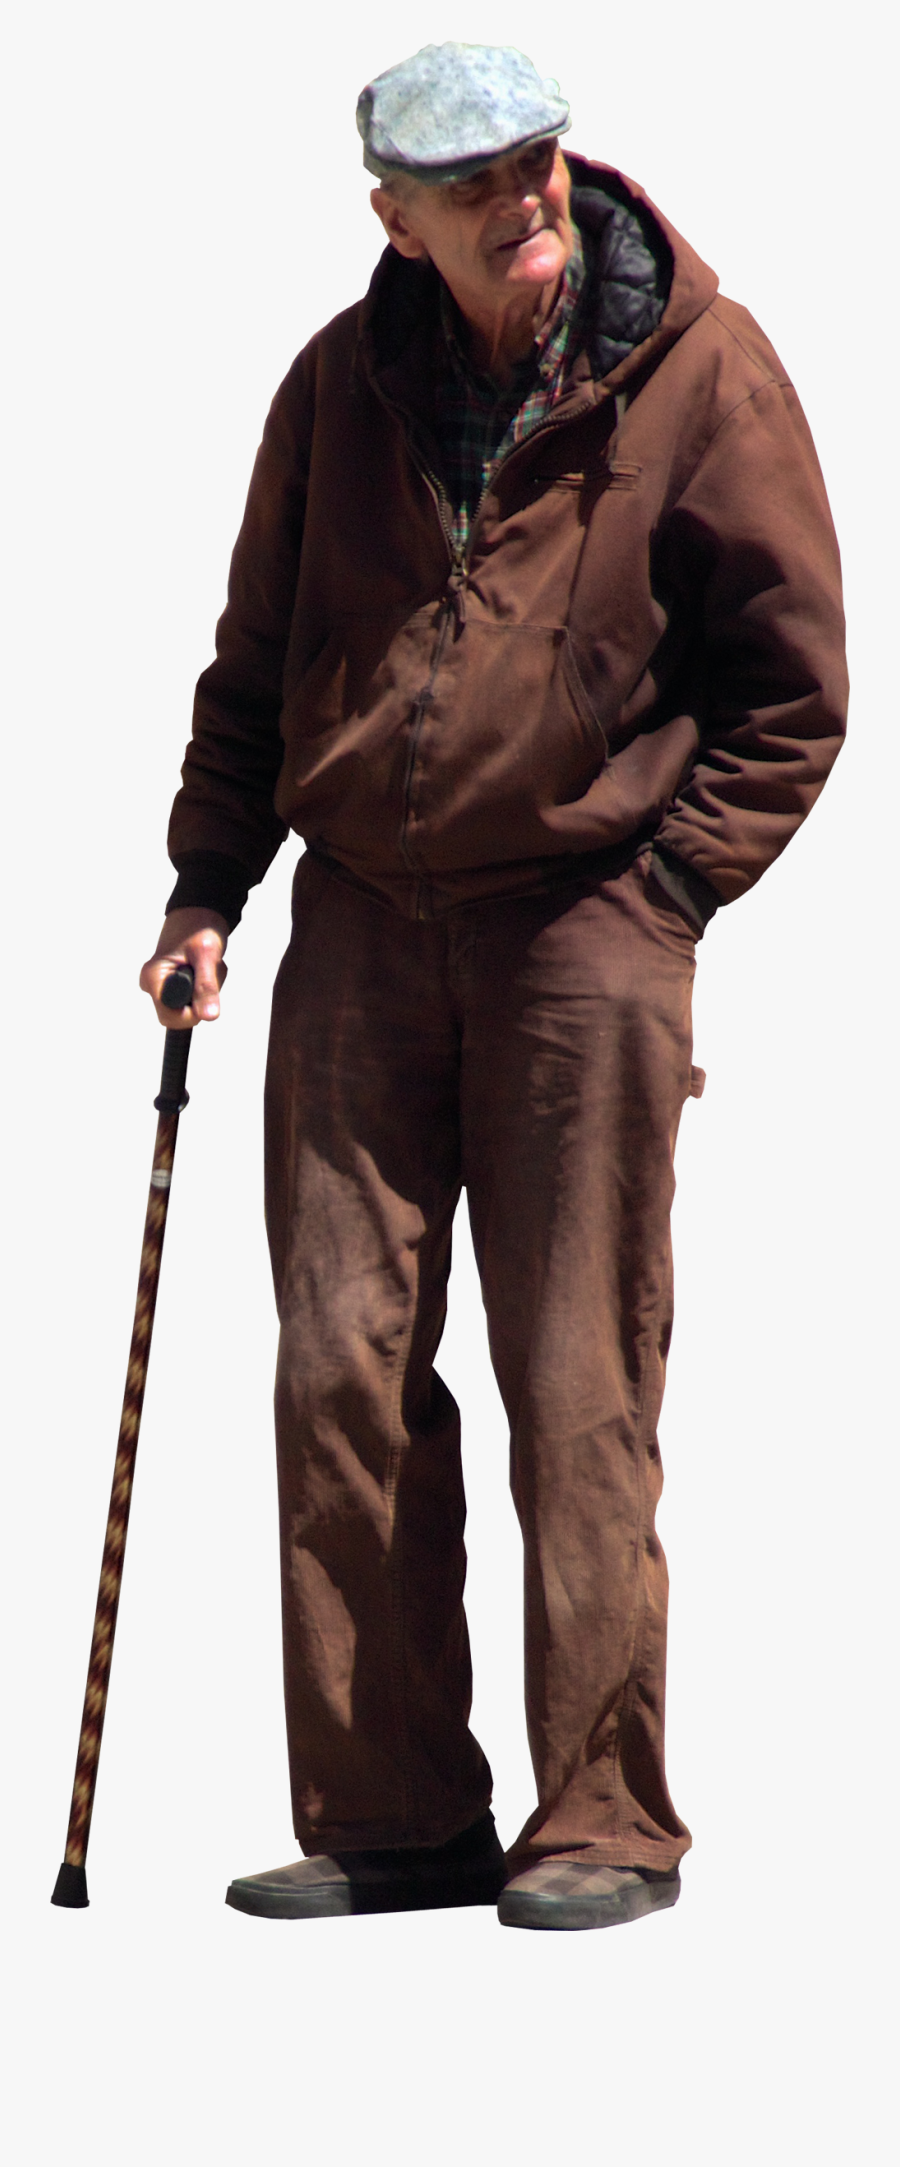 Old Man With Walking Stick, Transparent Clipart